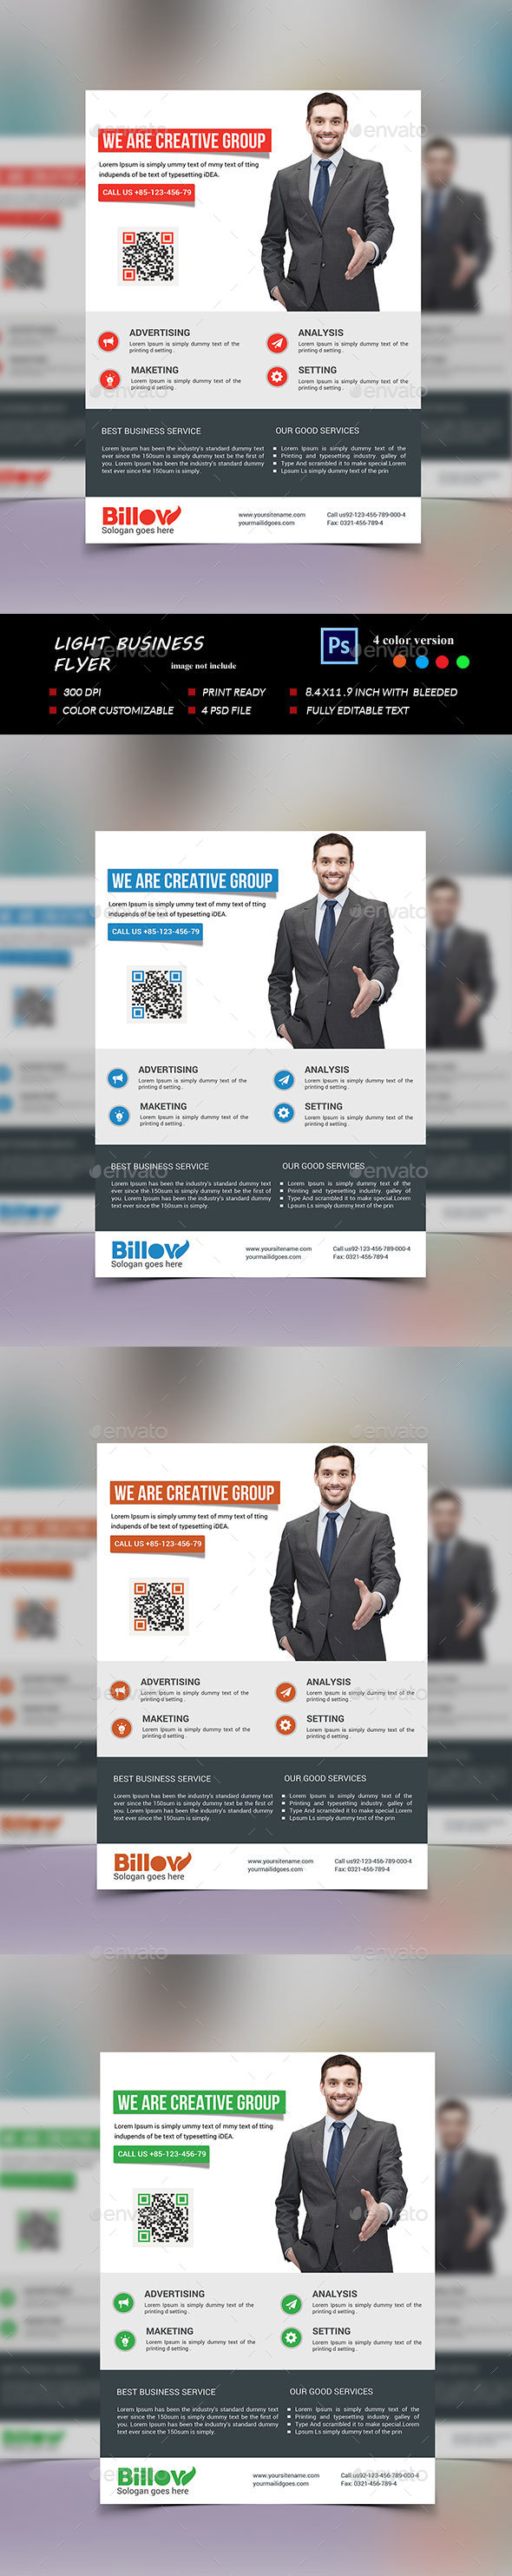 Light Business Flyer - Corporate Flyers